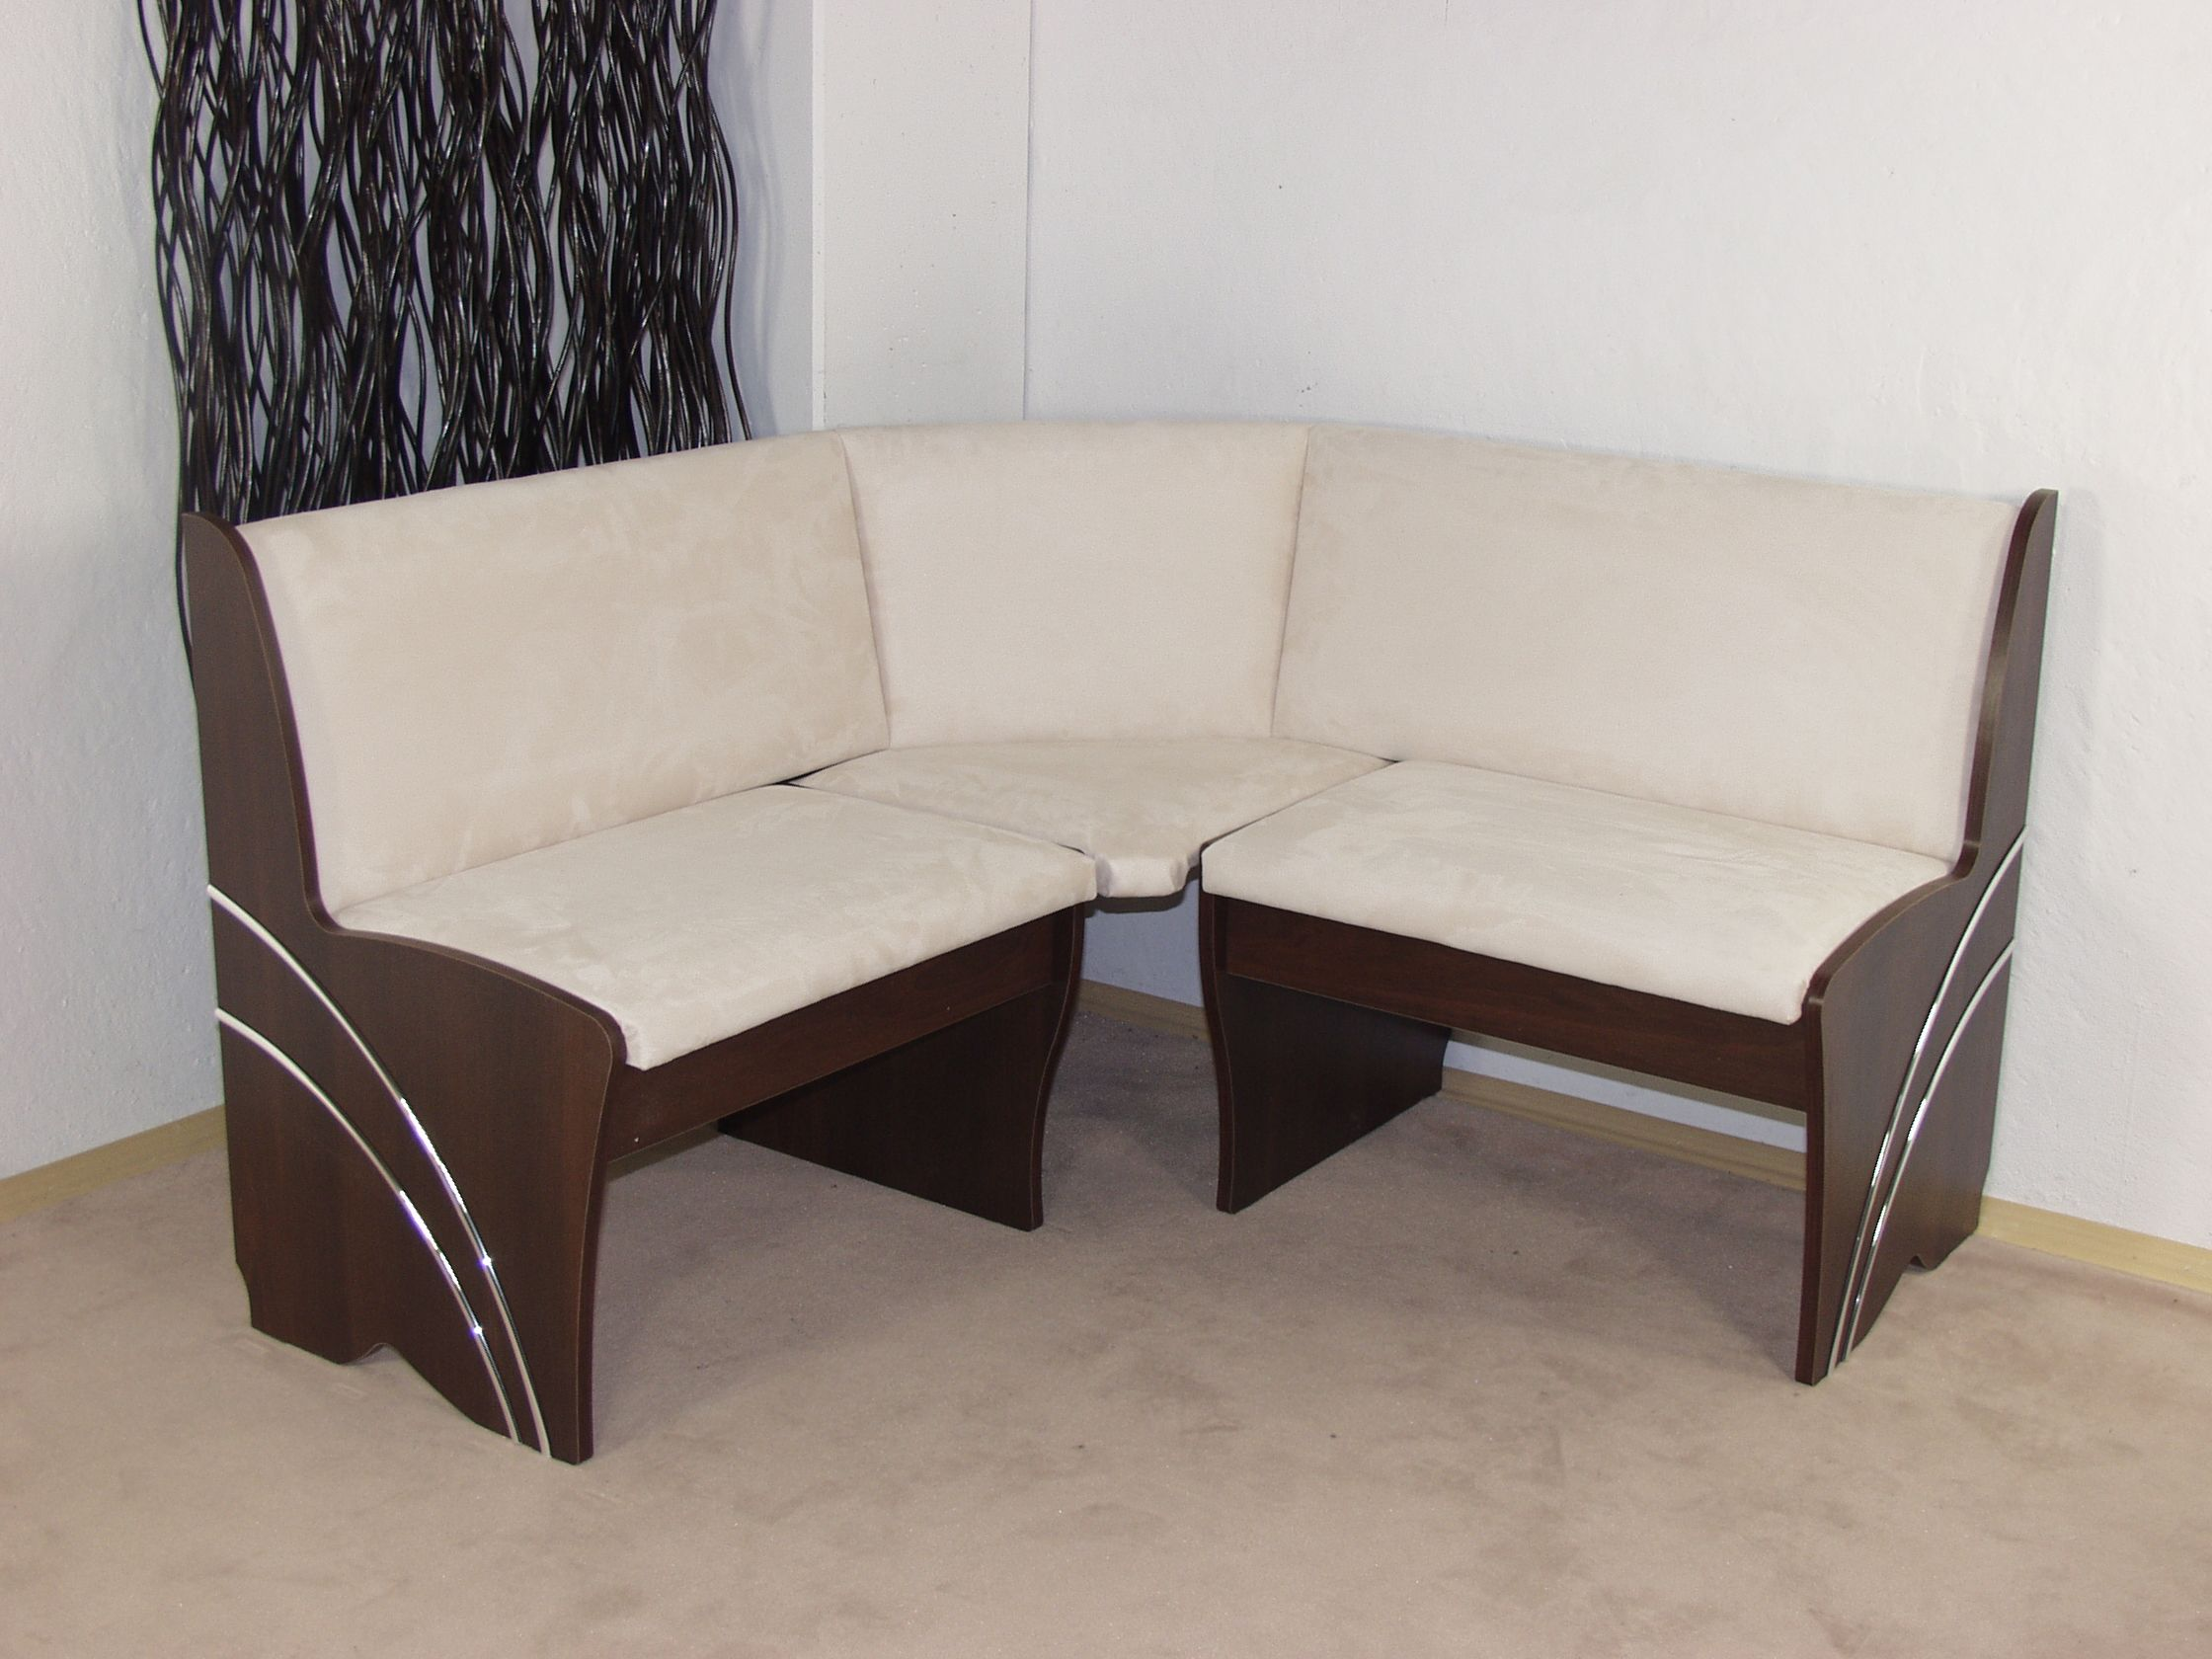 truheneckbank gleichschenklig nu baum dunkel creme eckbank sitzecke k che neu ebay. Black Bedroom Furniture Sets. Home Design Ideas